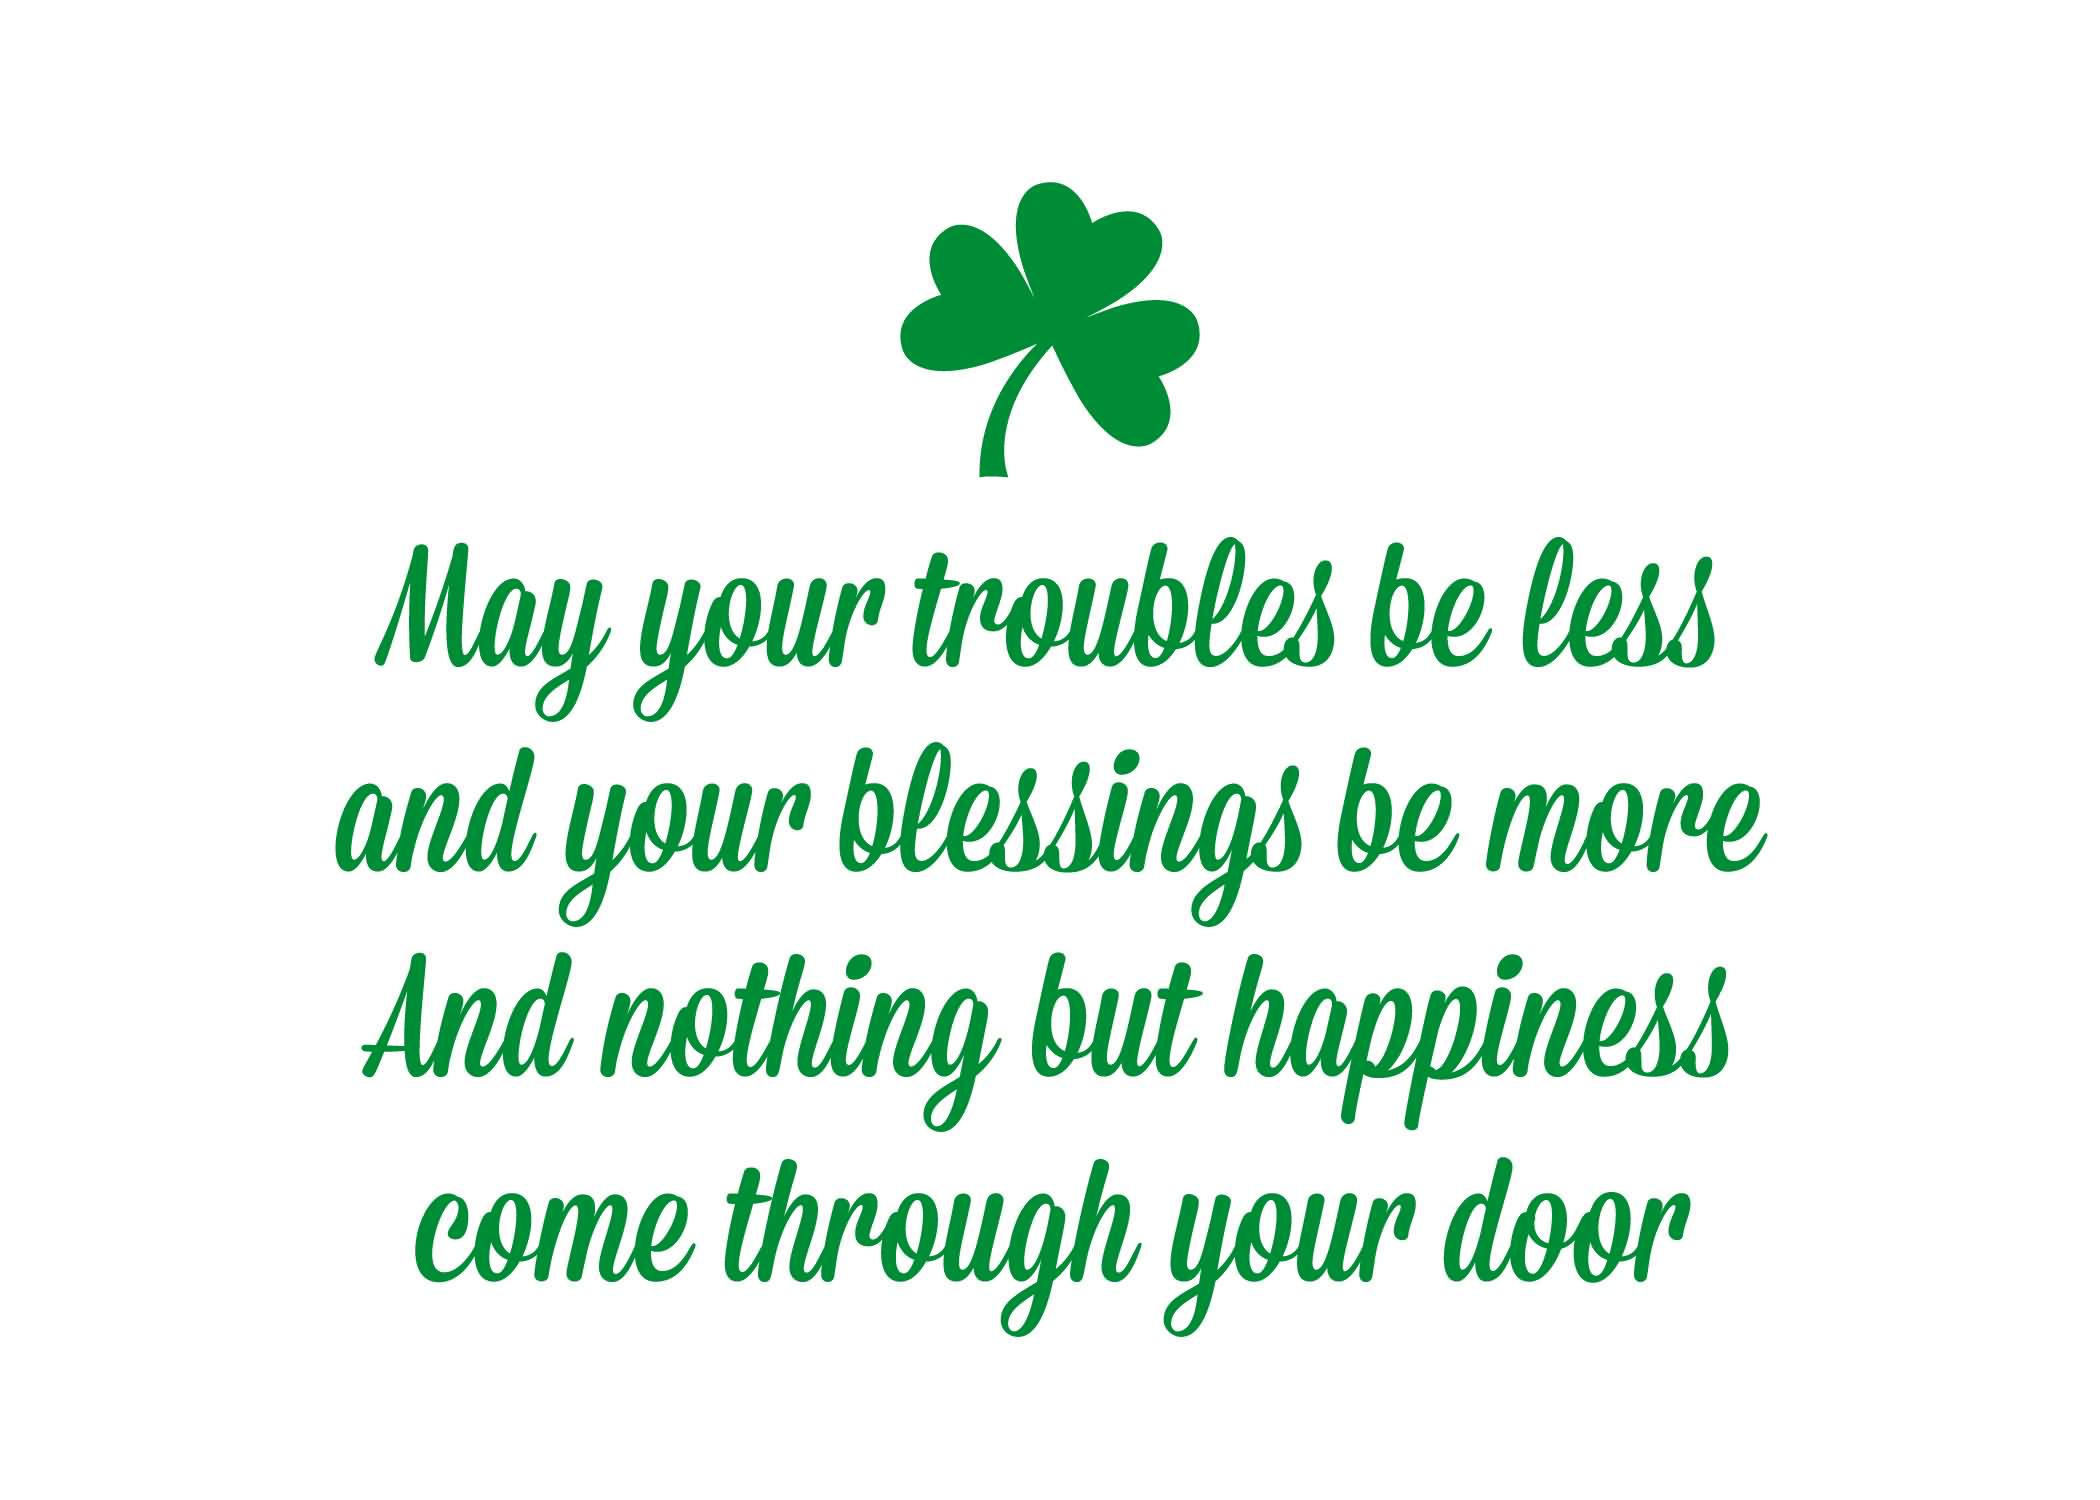 St. Patrick's Day Wish 11